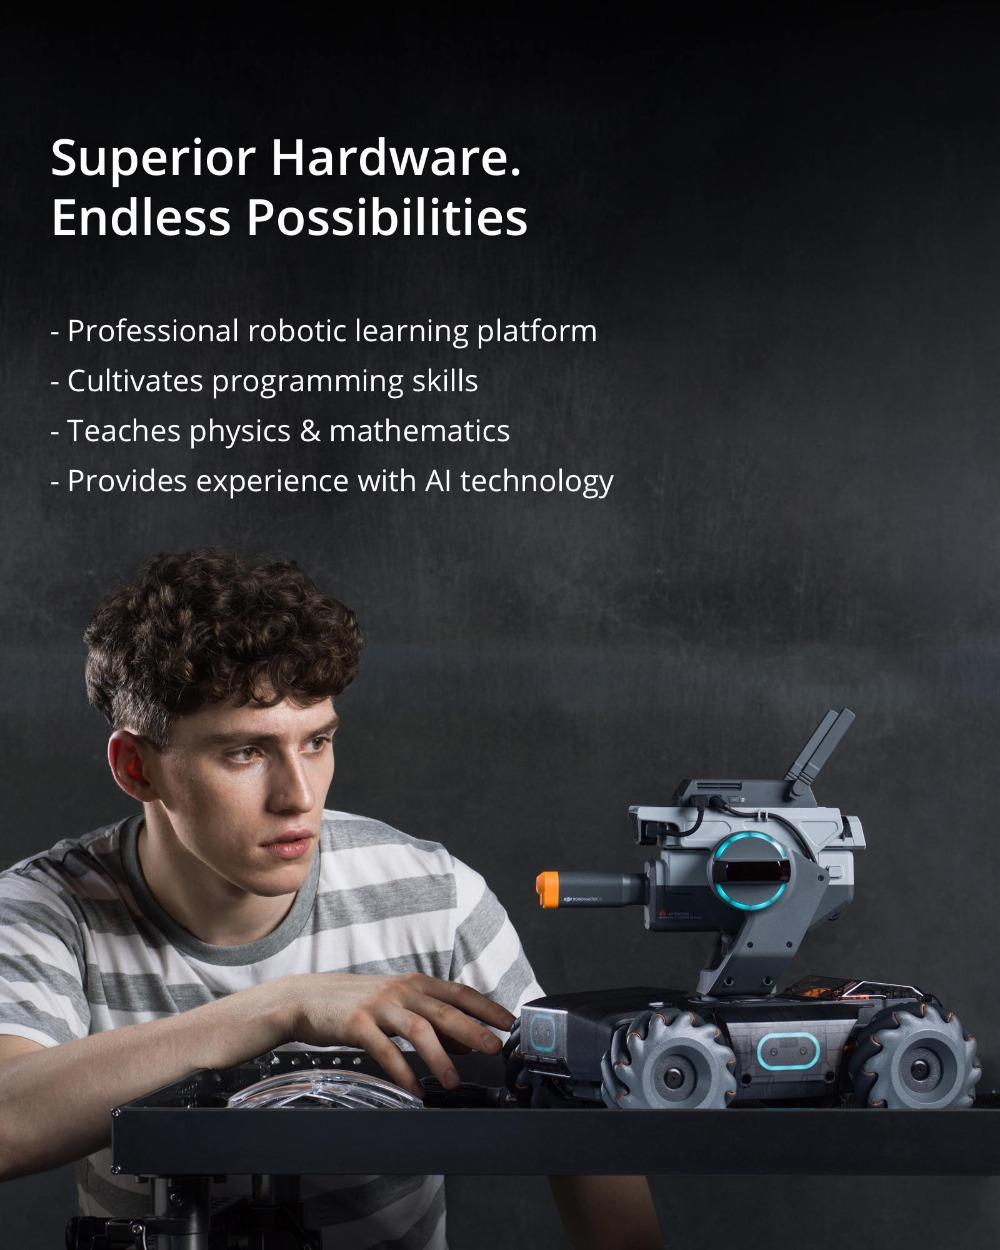 DJI RoboMaster S1, an intelligent educational robot